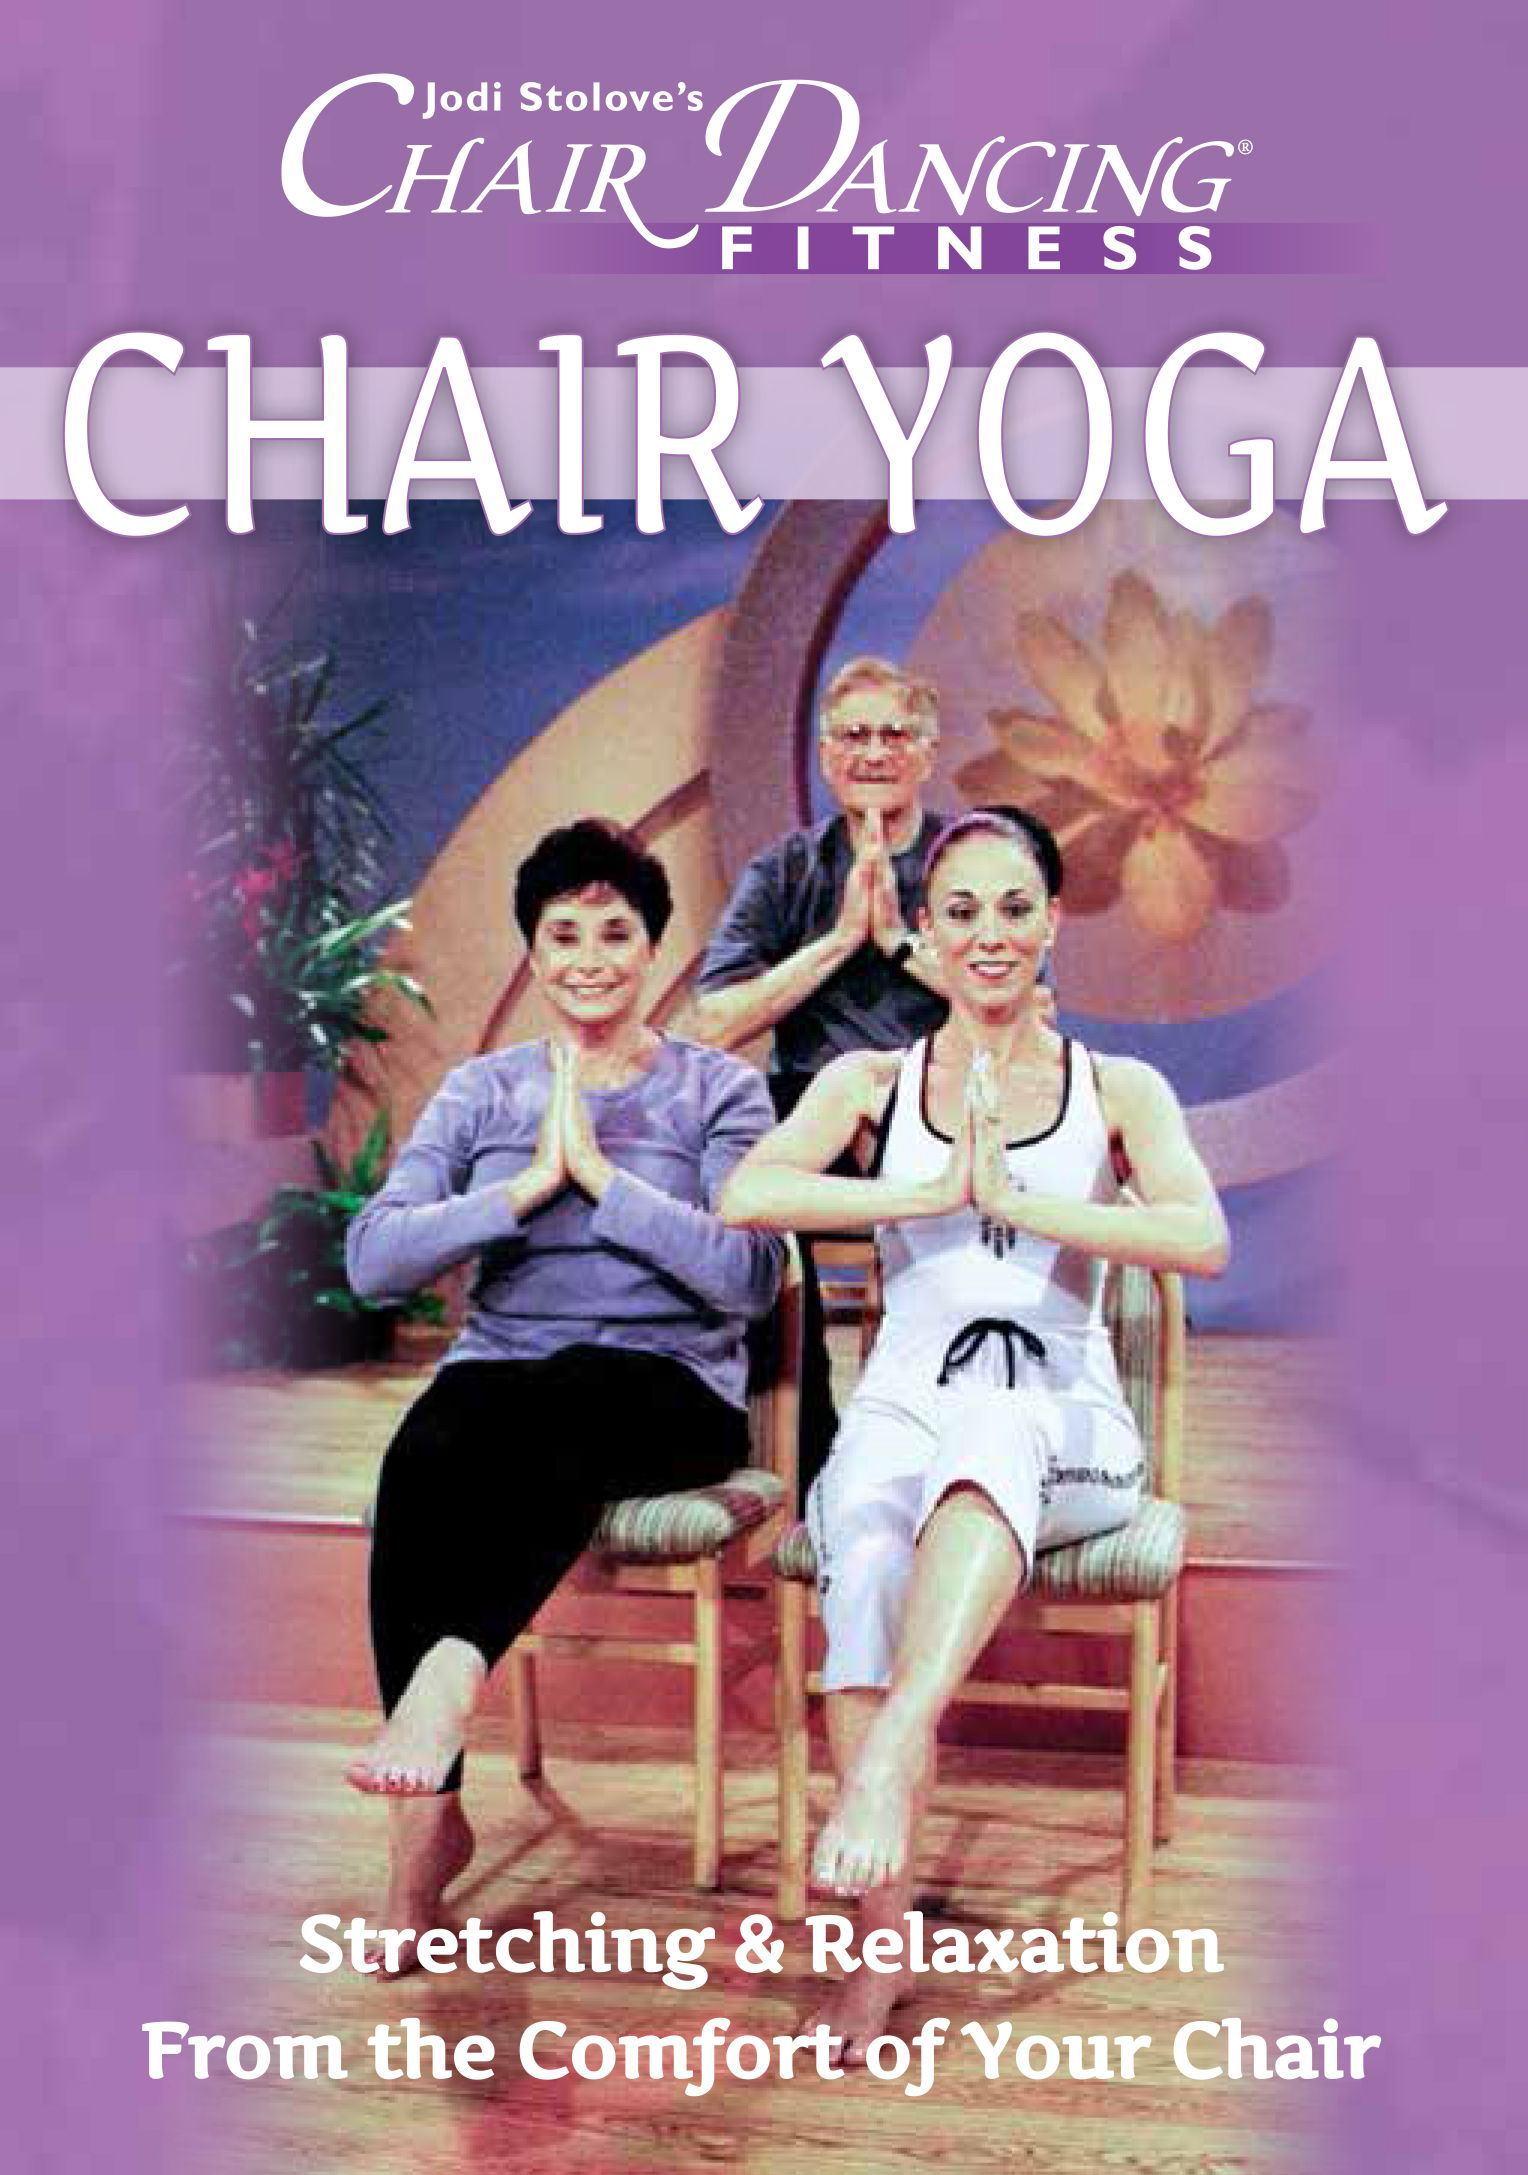 Chair Yoga DVD Enjoy modified Yoga postures from your